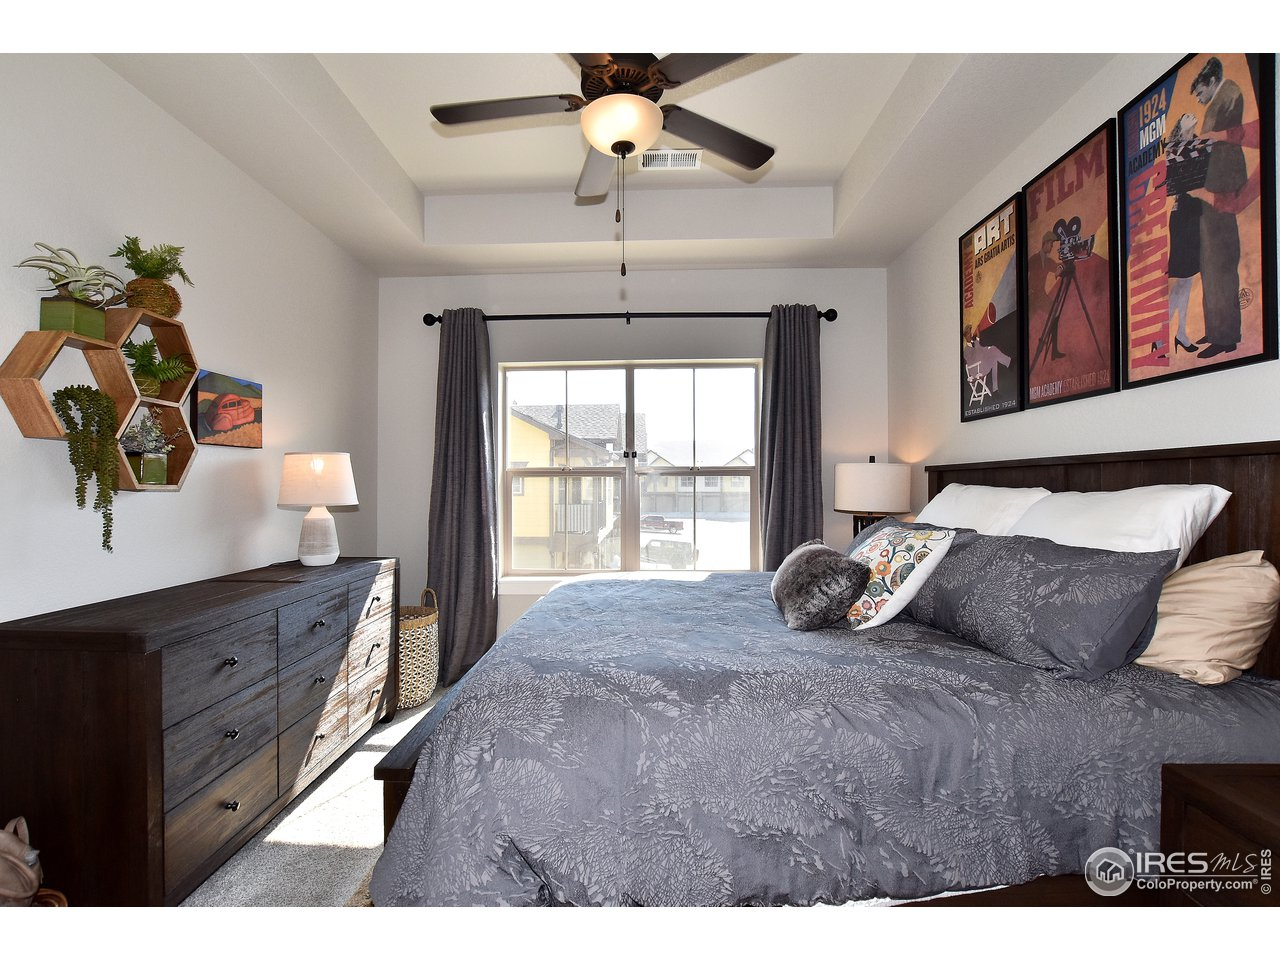 Easily accommodates a king size bed and dressers!